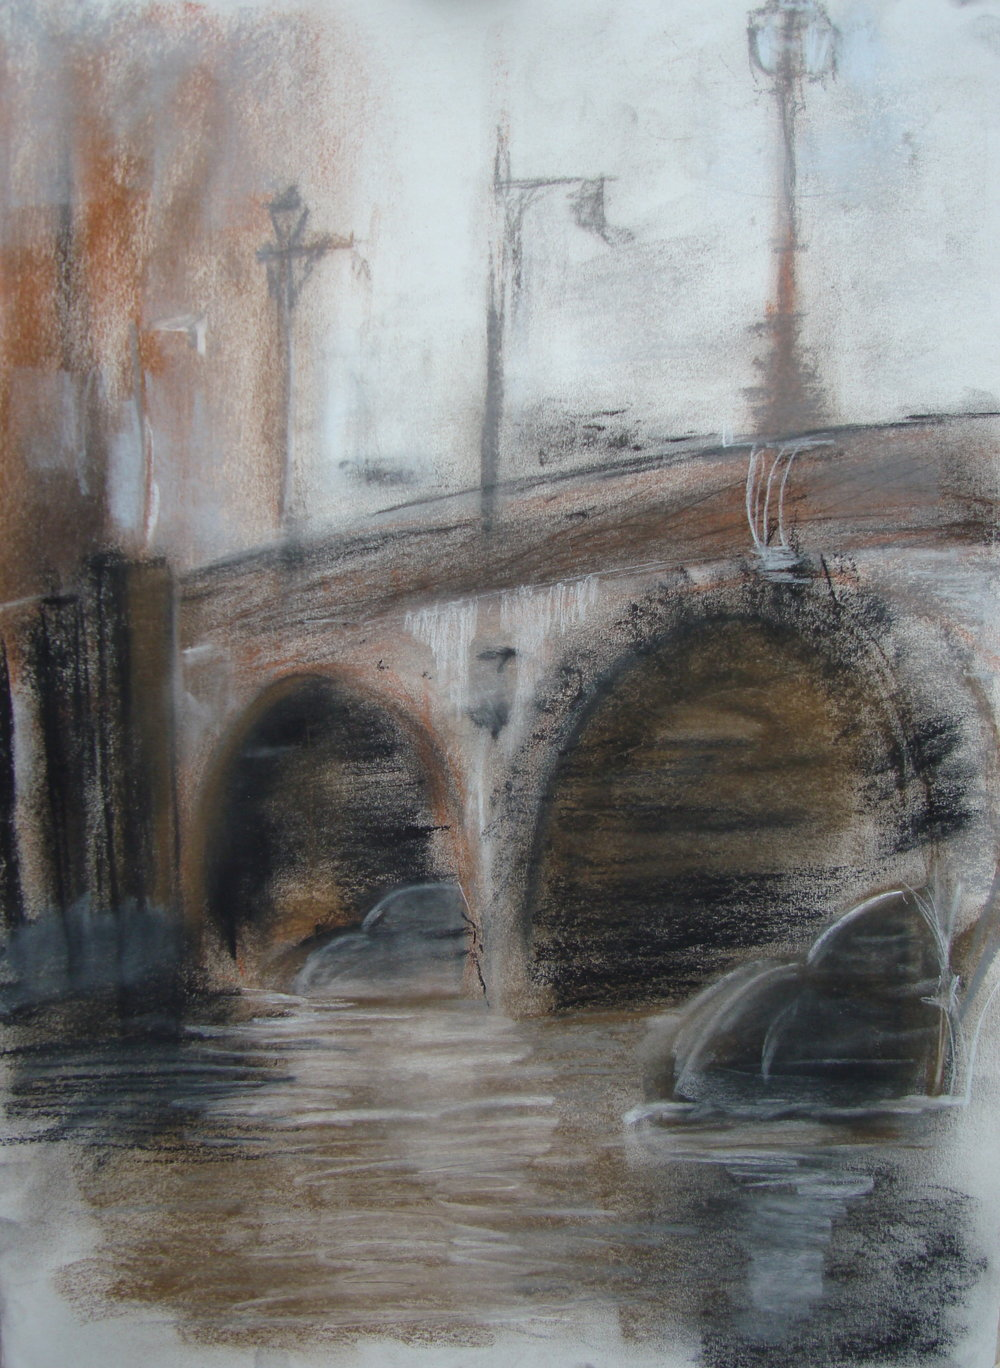 Kew Bridge Arches, Jan Marshall